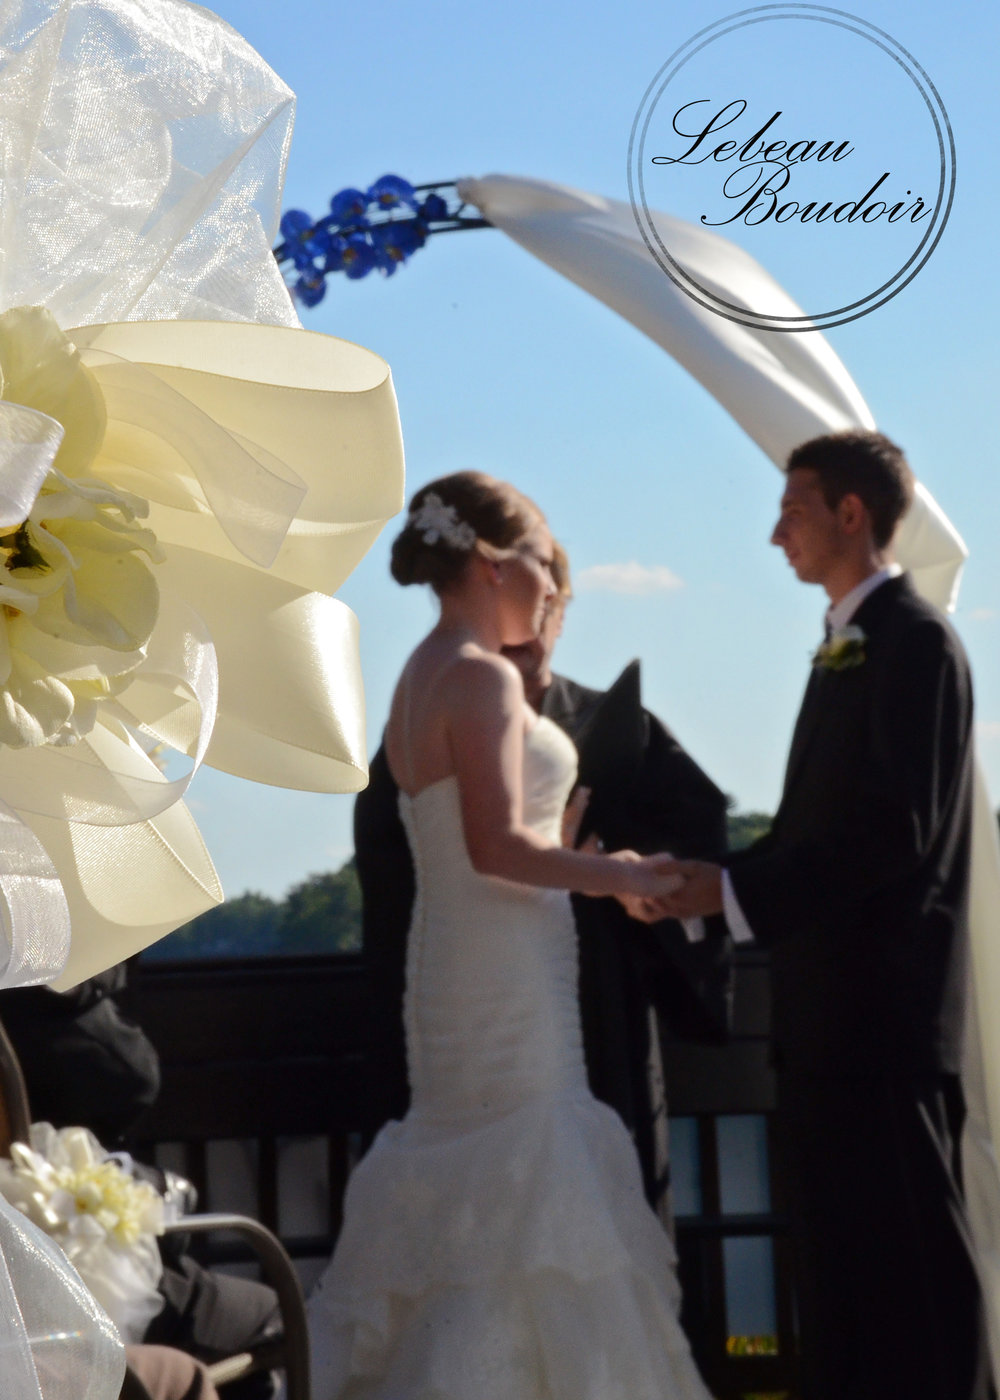 lake congamond lebeau boudoir weddings